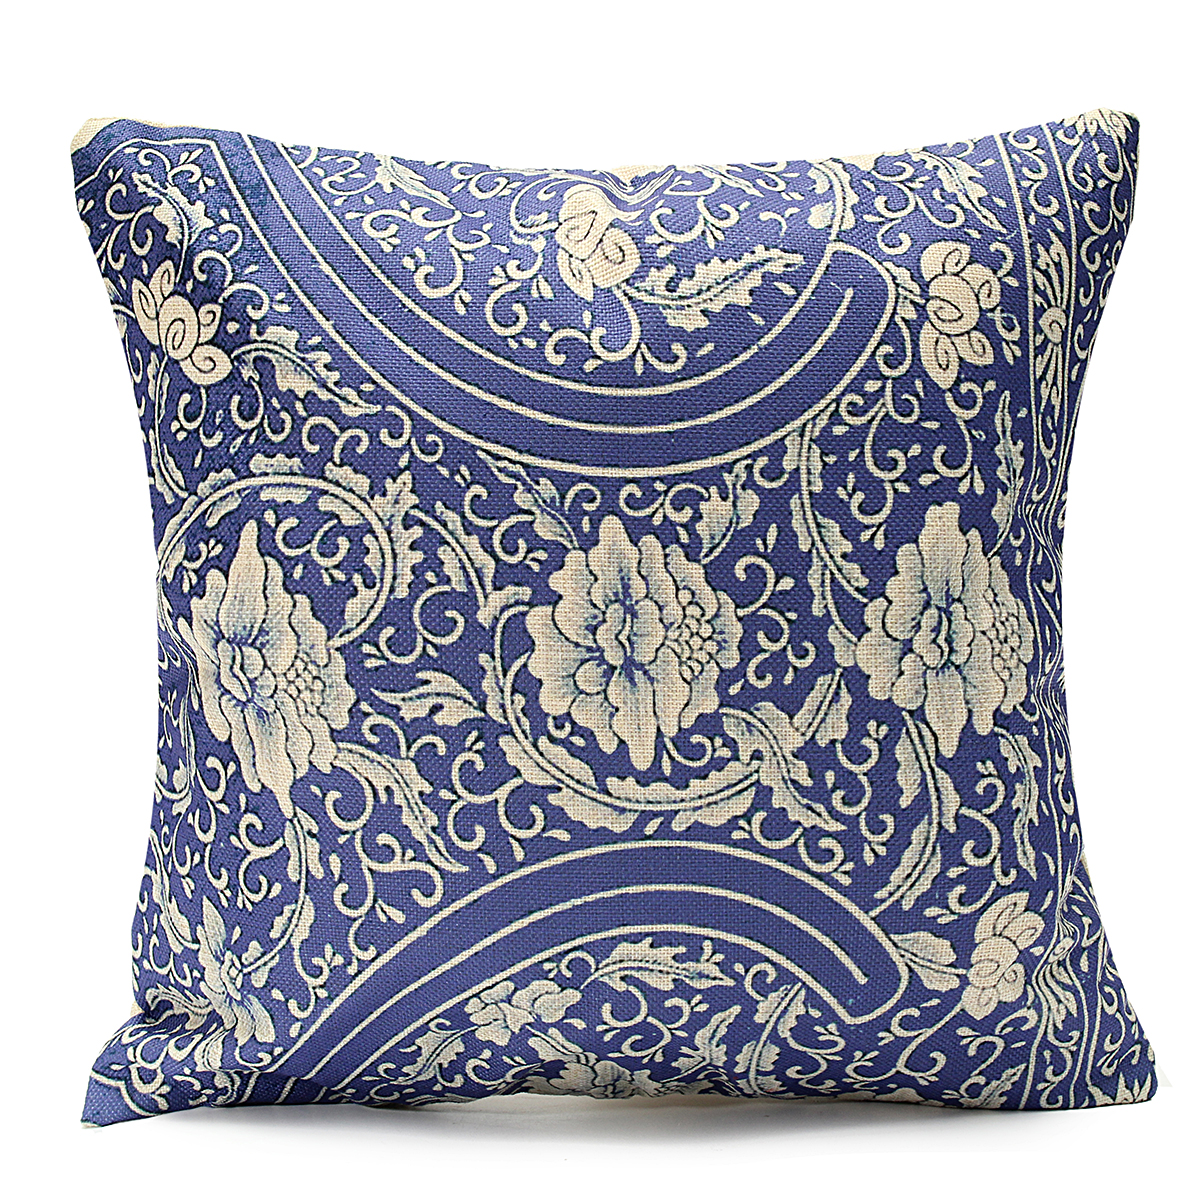 Click here to buy 45x45cm Vintage Oriental Blue Floral Cotton Linen Pillow Case Cushion.